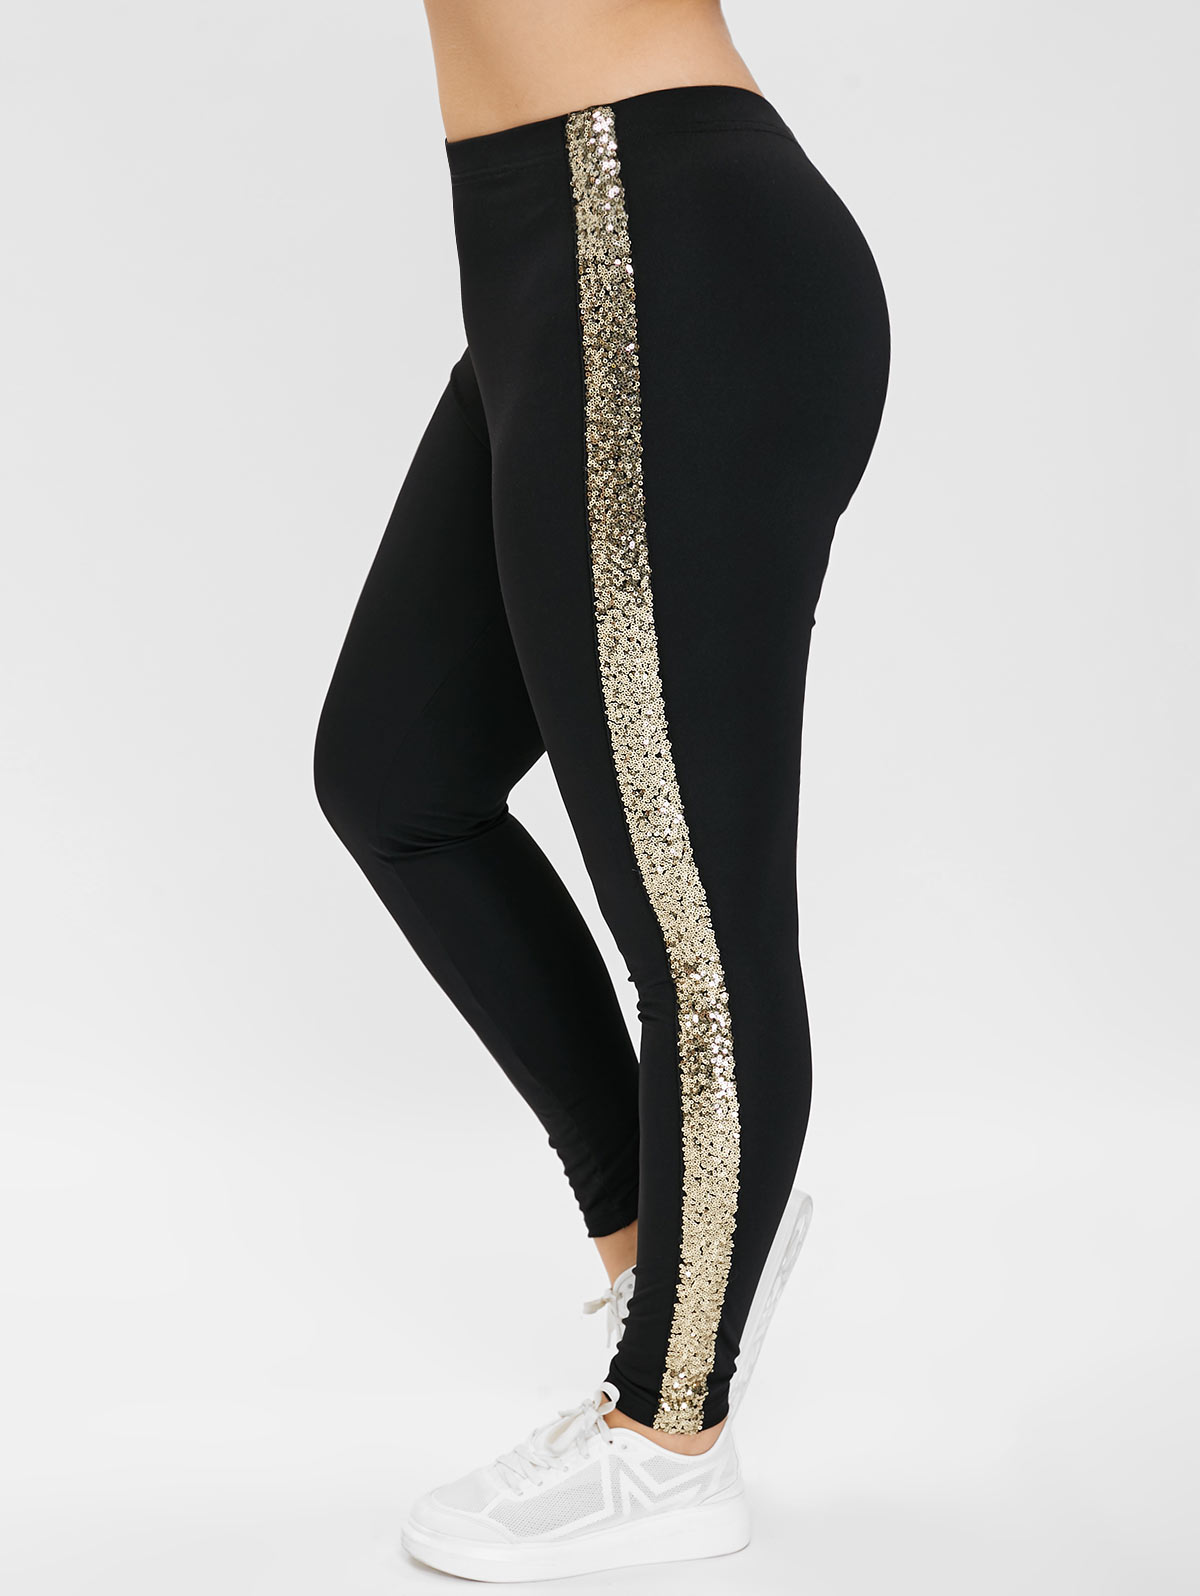 e5f4f8379fdba Details about Plus Size Women High Waisted Sequined Leggings Skinny Gym  Sports Leggings Pants